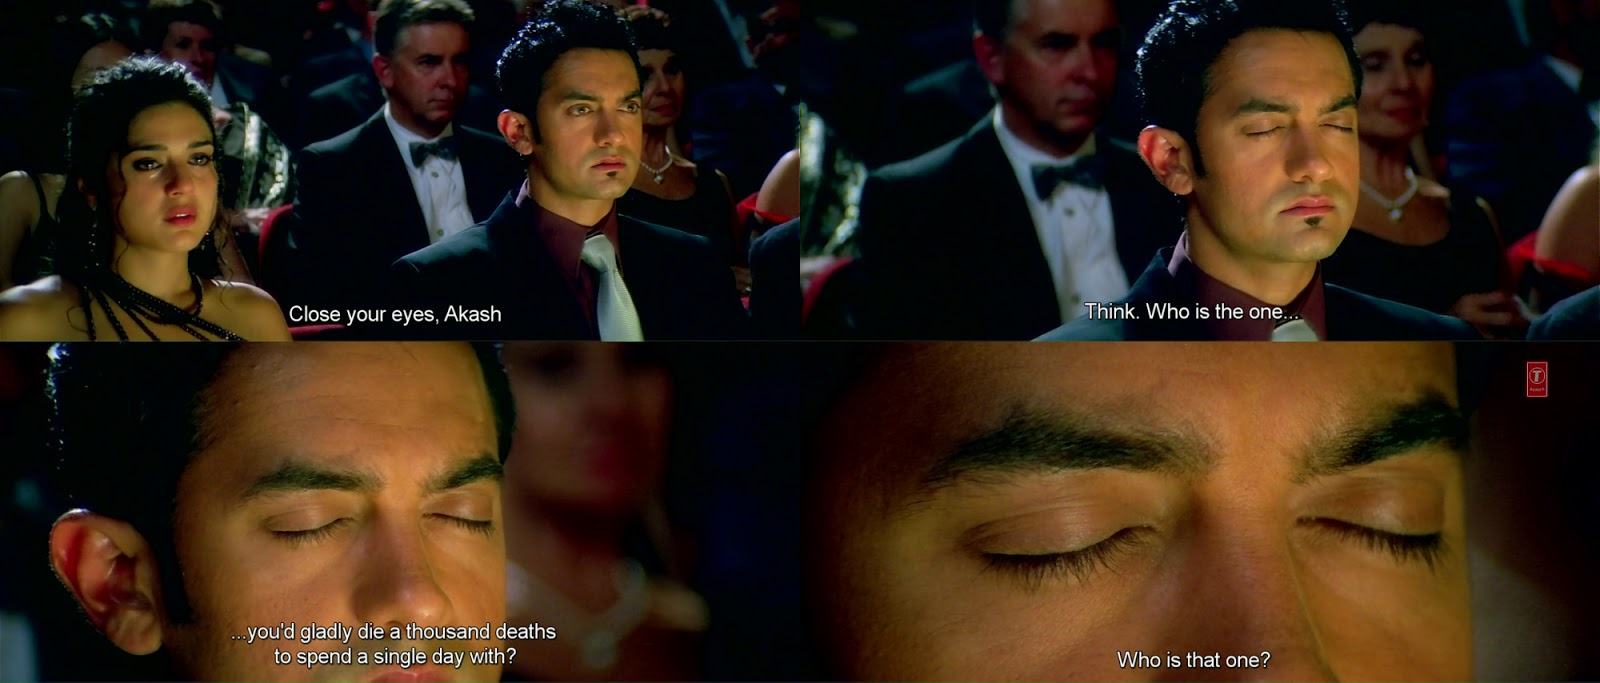 Image result for Dil Chahta Hai: When Akaash closes his eyes and sees Shalini, who was sitting next to her during the opera